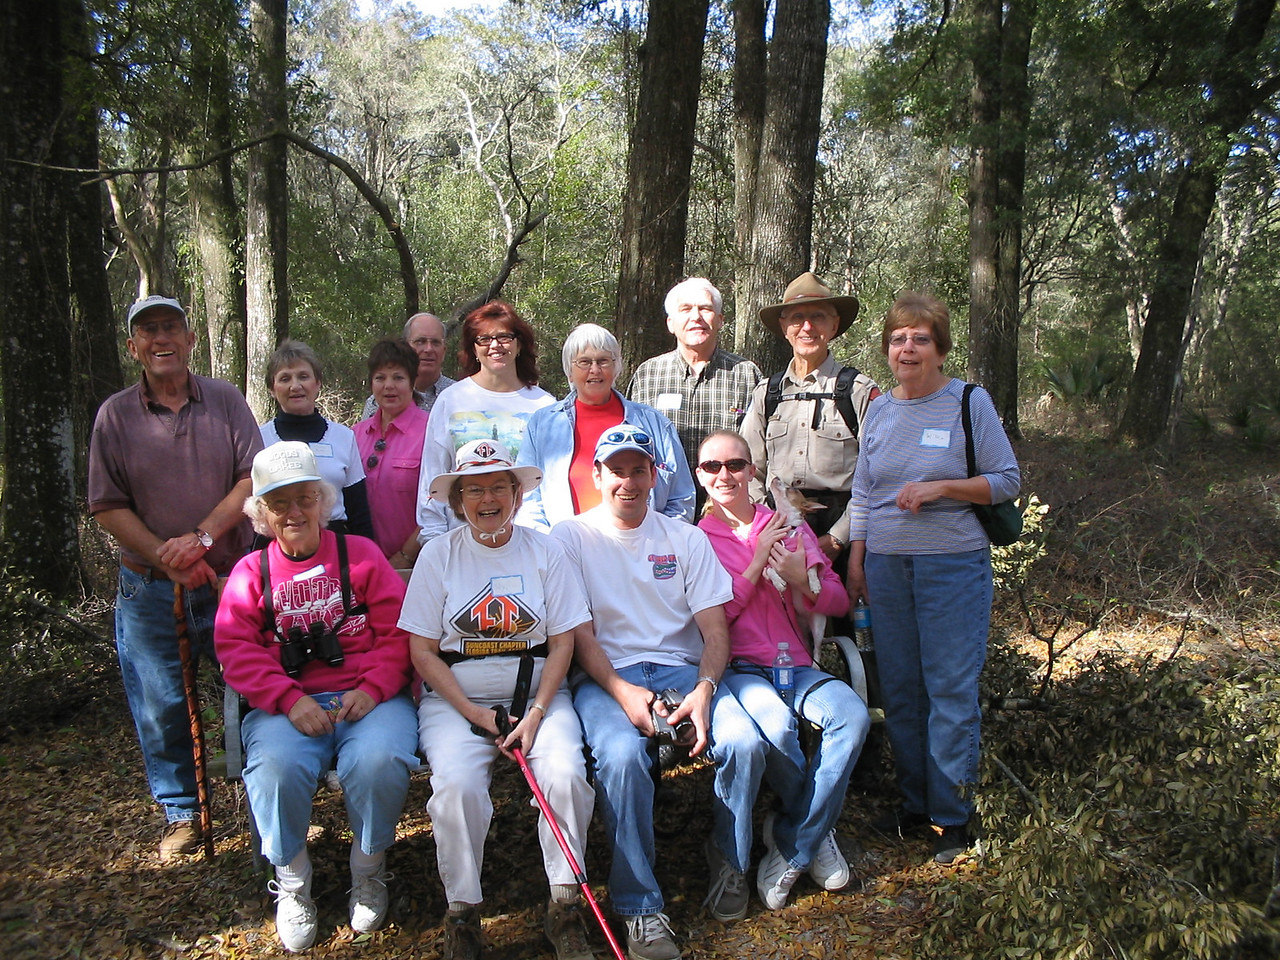 Happy hikers on the Cross Florida Greenway, Belleview Gateway Community celebration<br /> photo credit: Judy Trotta / Florida Trail Association